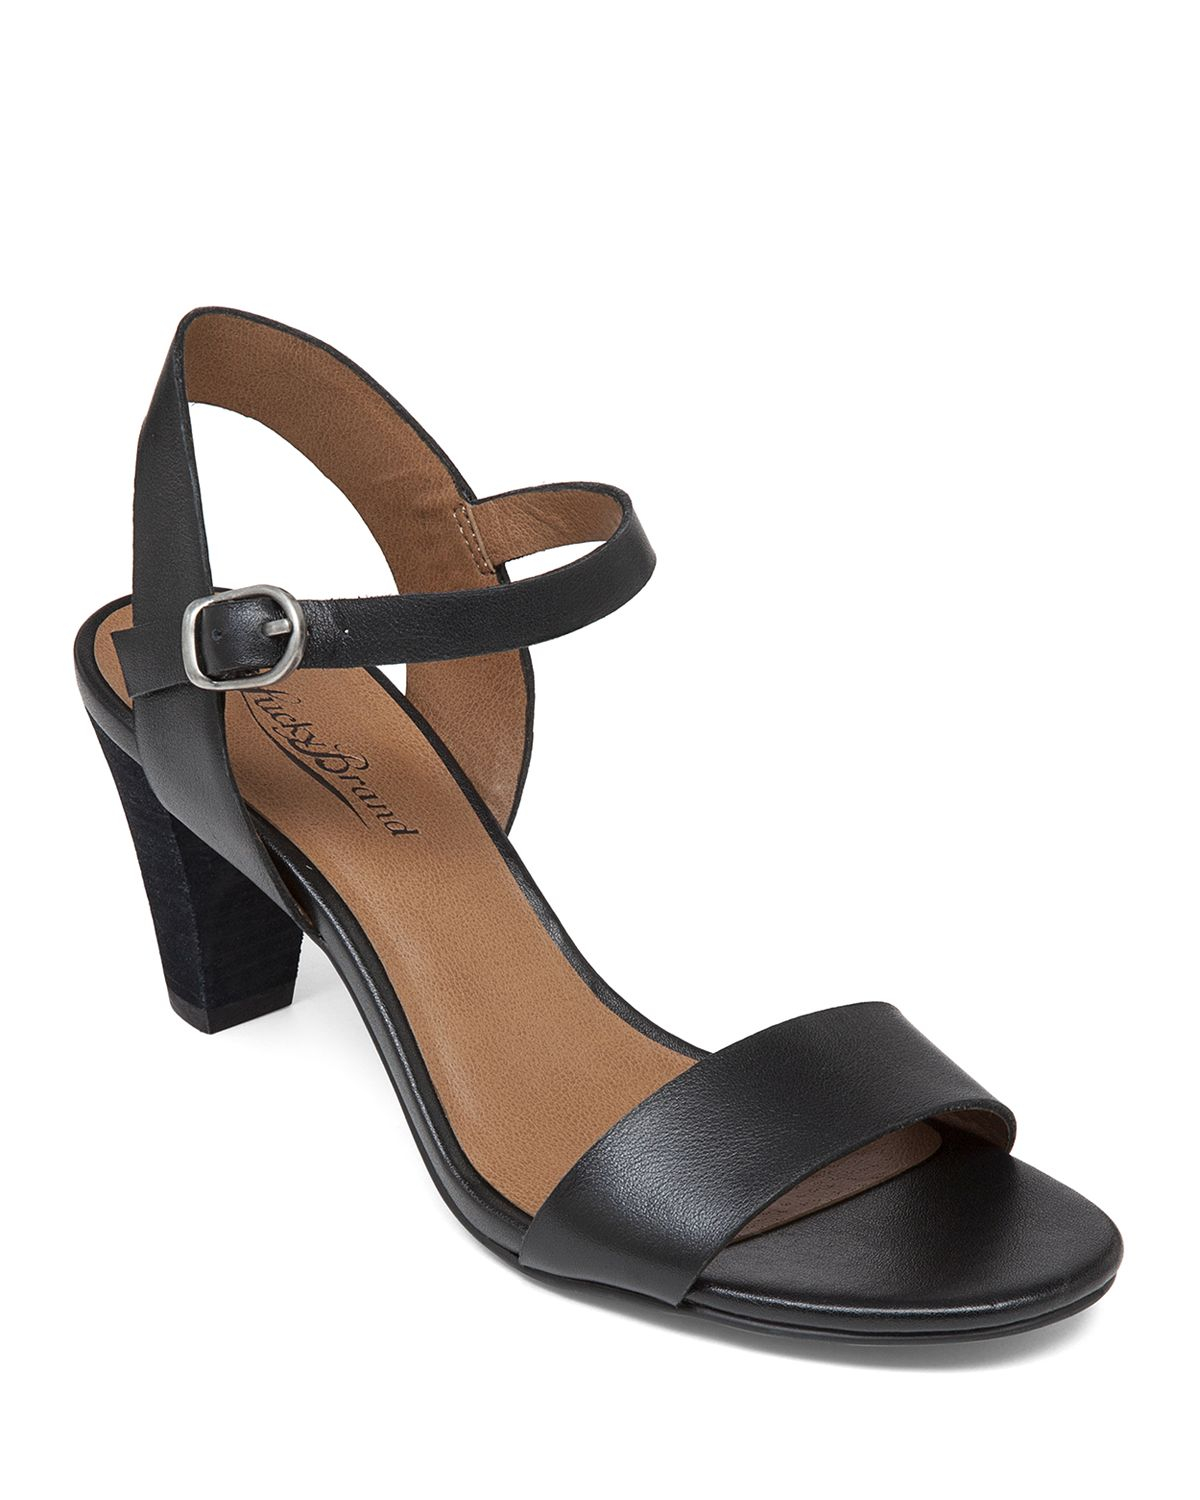 e0c85654997a Lyst - Lucky Brand Ankle Strap Sandals - Pepperr Mid Heel in Black